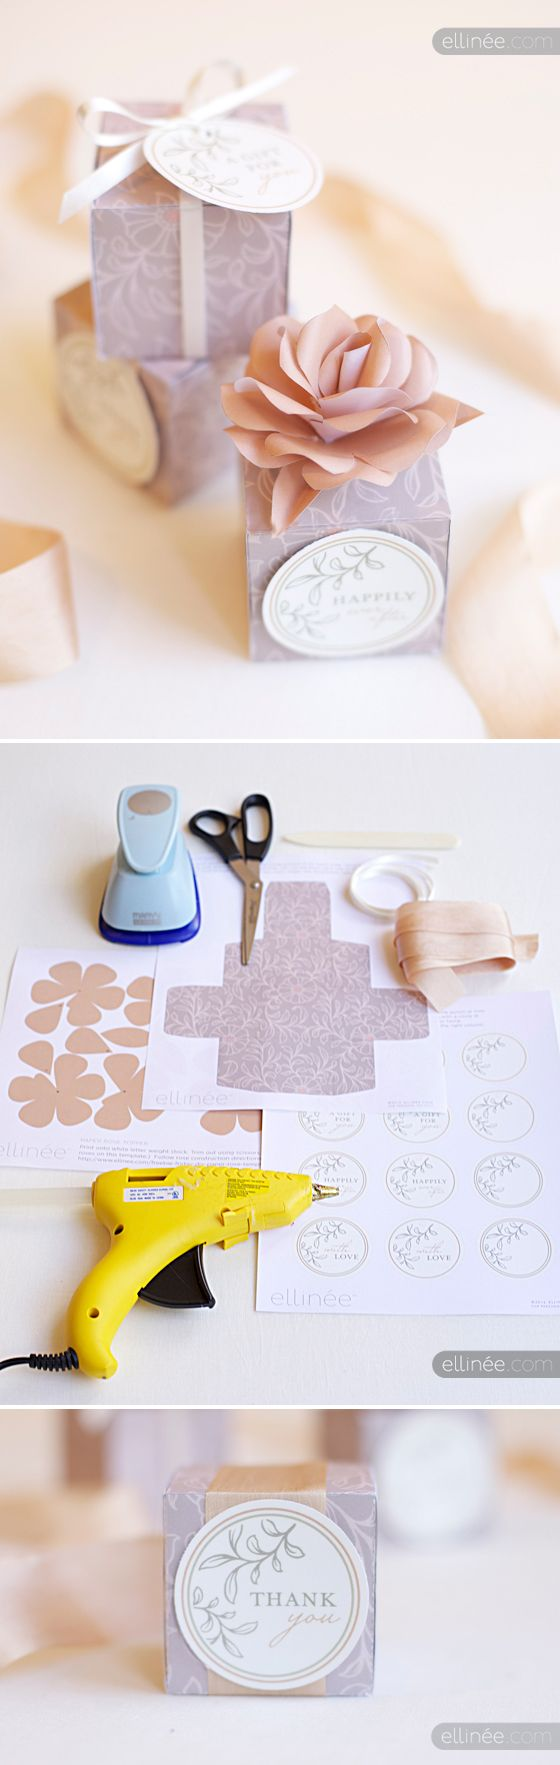 free templates for a patterned gift box a rose topper and lovely round tags from Ellinée http://www.ellinee.com/blog/freebie-friday-diy-wedding-favor-box-tags/